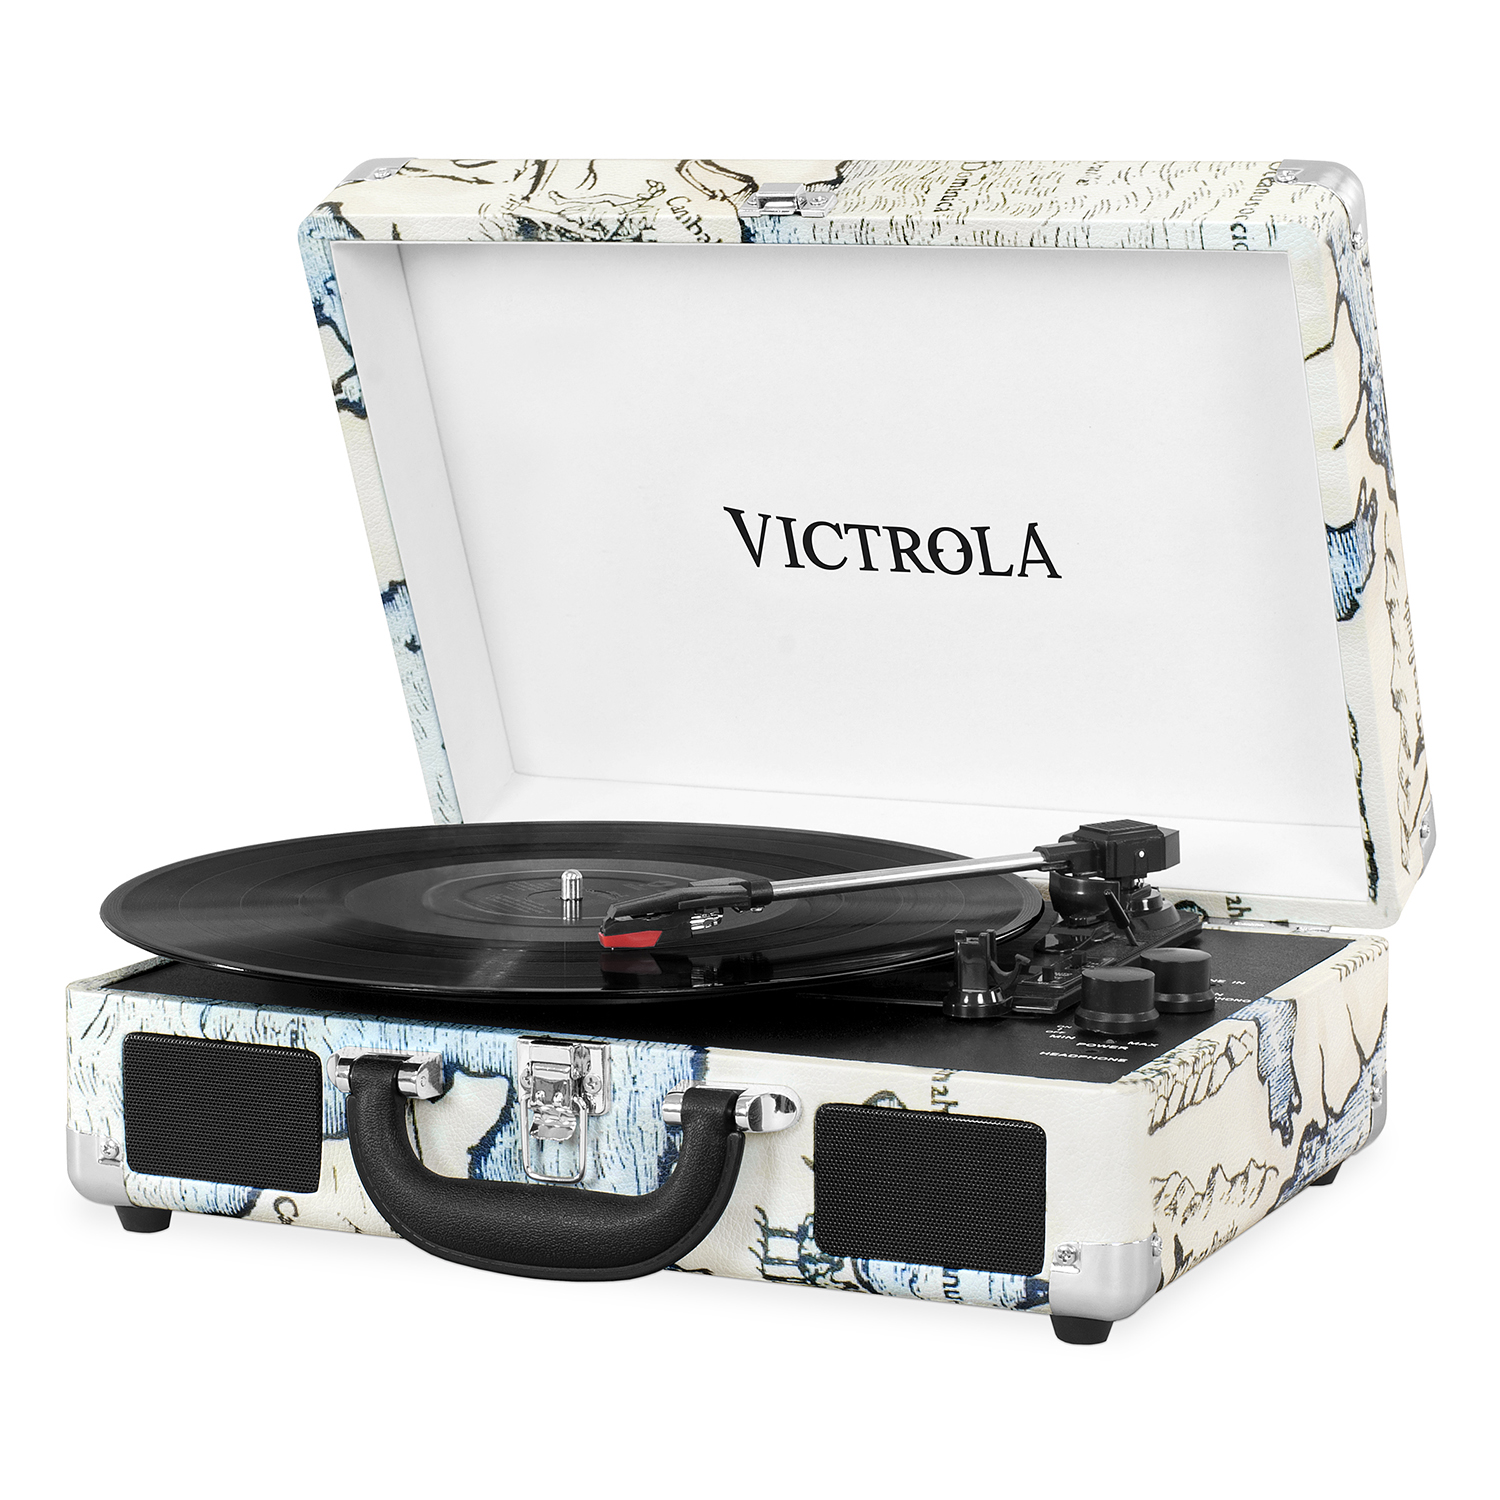 VSC-550BT-P4, suitcase record player 3-speed stereo speakers, BT,immit. leather, map print